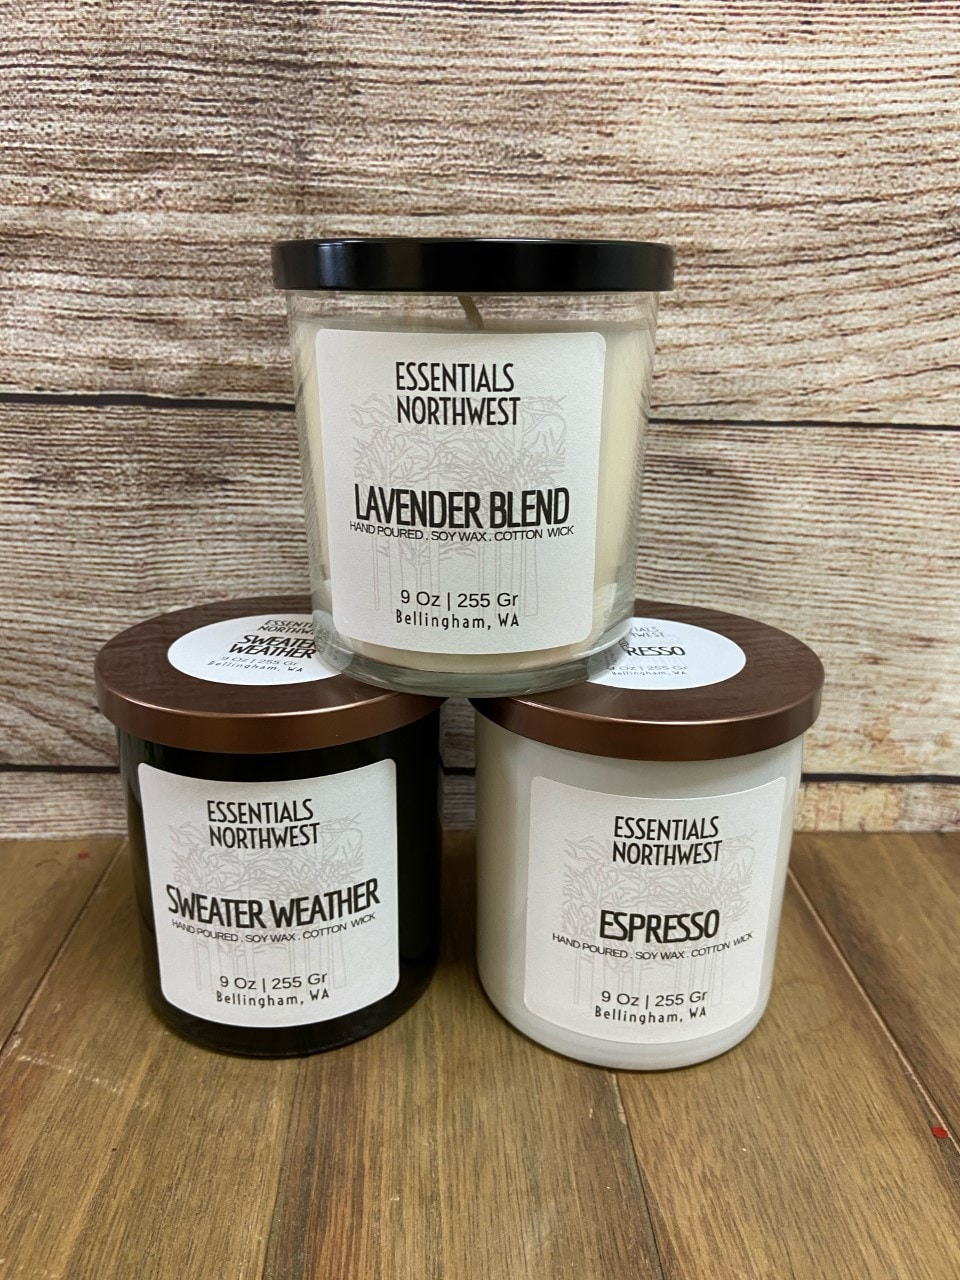 Essentials Northwest candles (made in Bellingham)